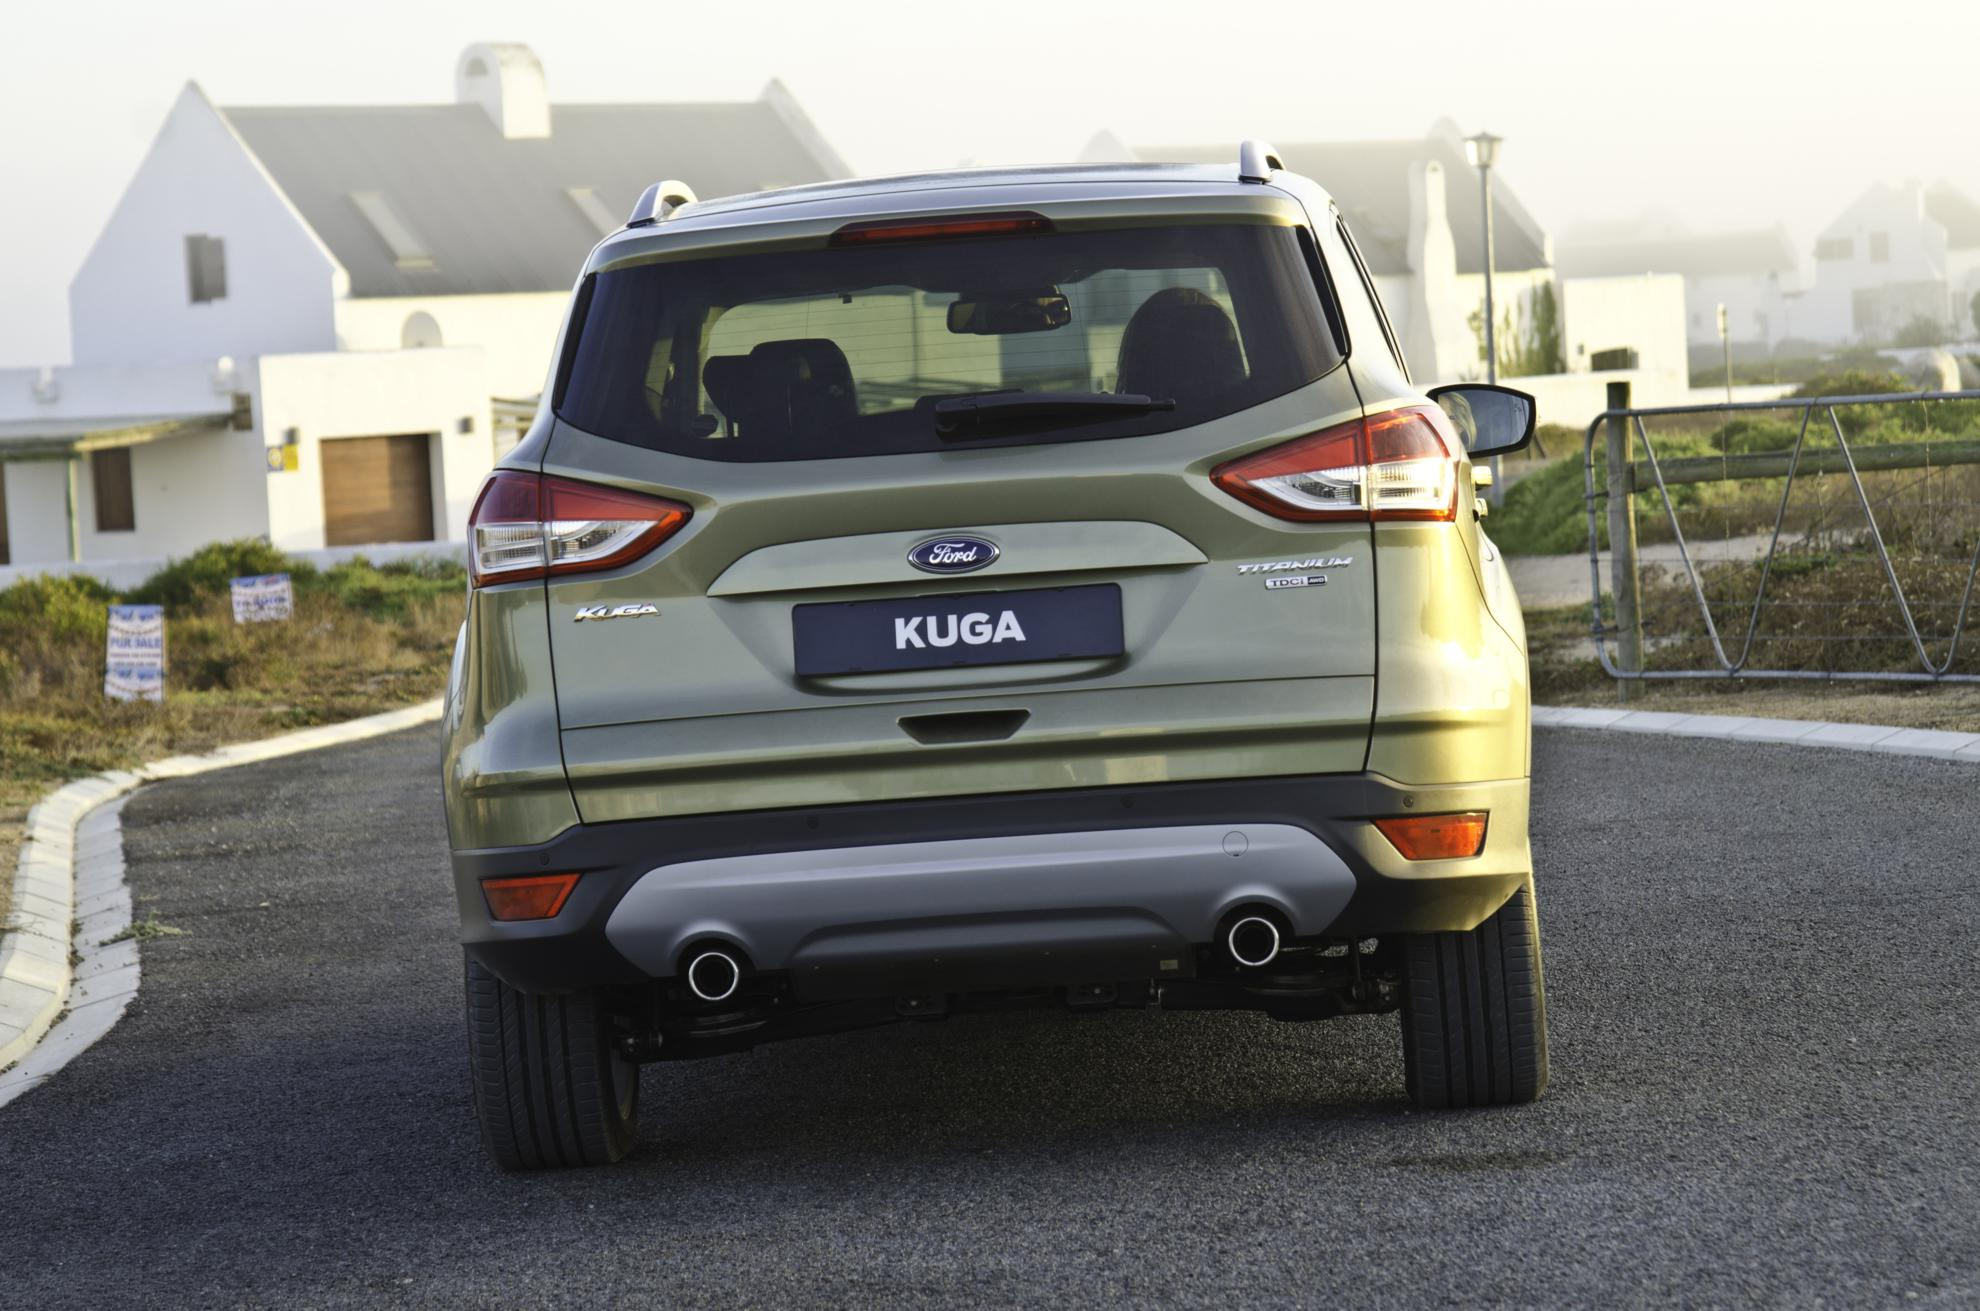 ford kuga hands free tailgate. Black Bedroom Furniture Sets. Home Design Ideas